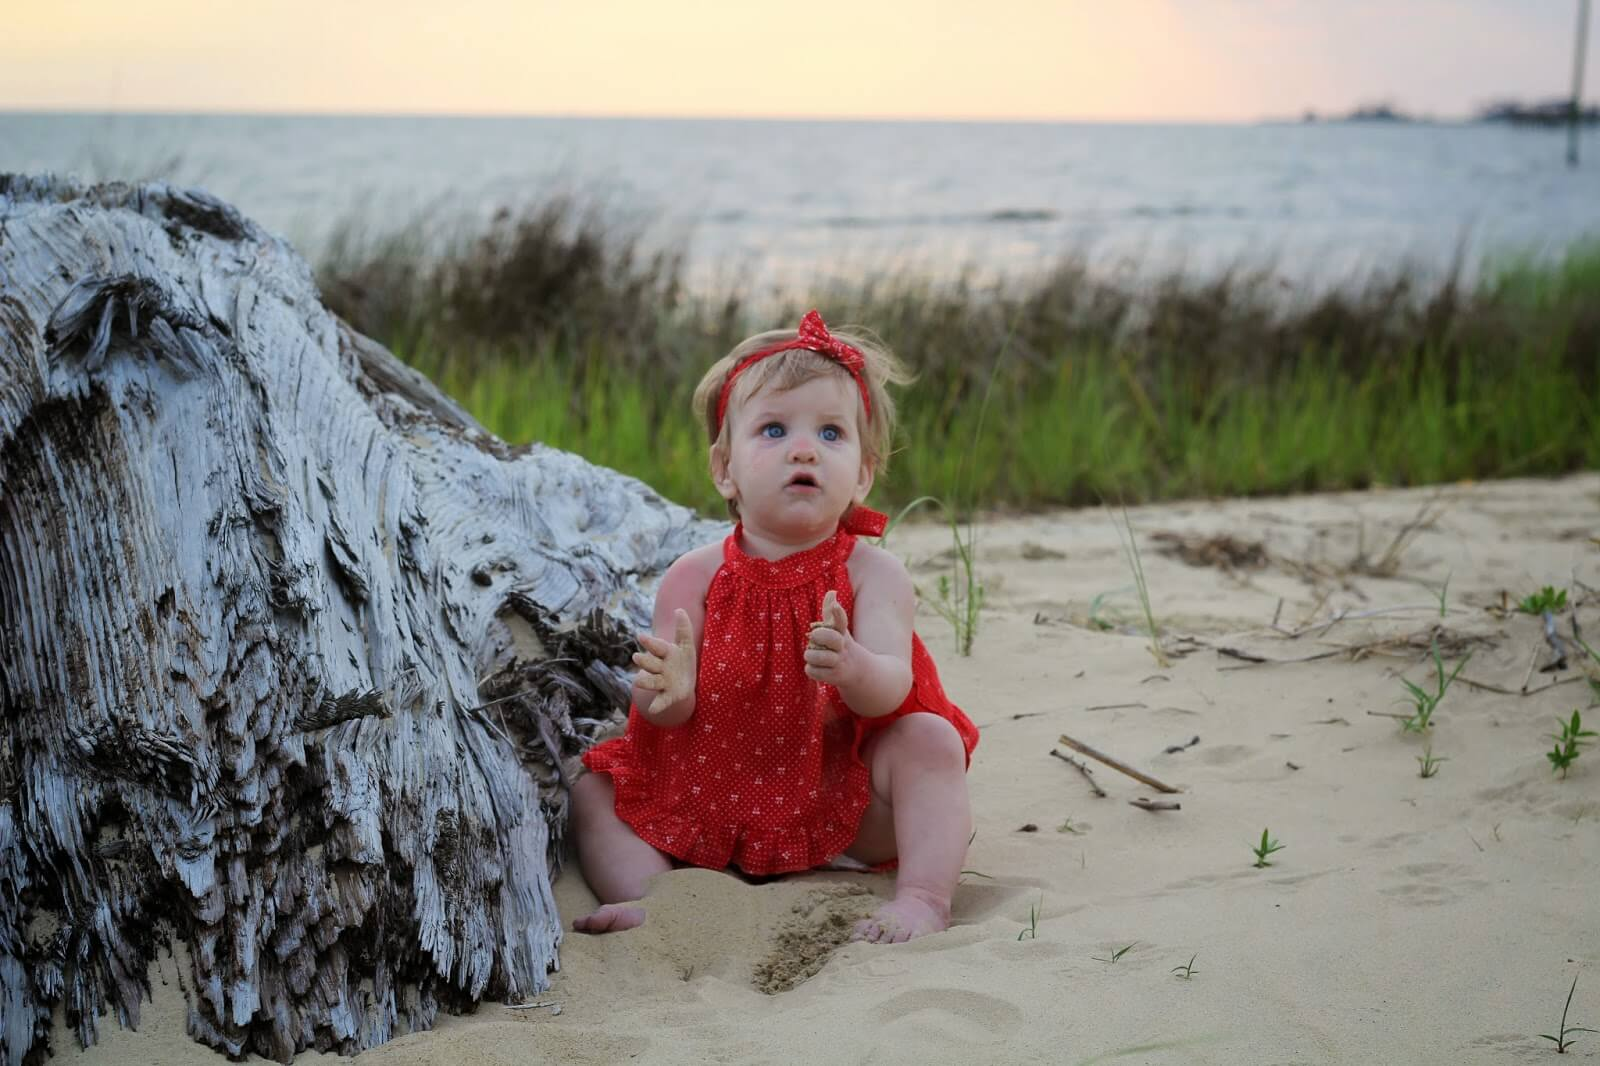 cute baby girl sitting in sand